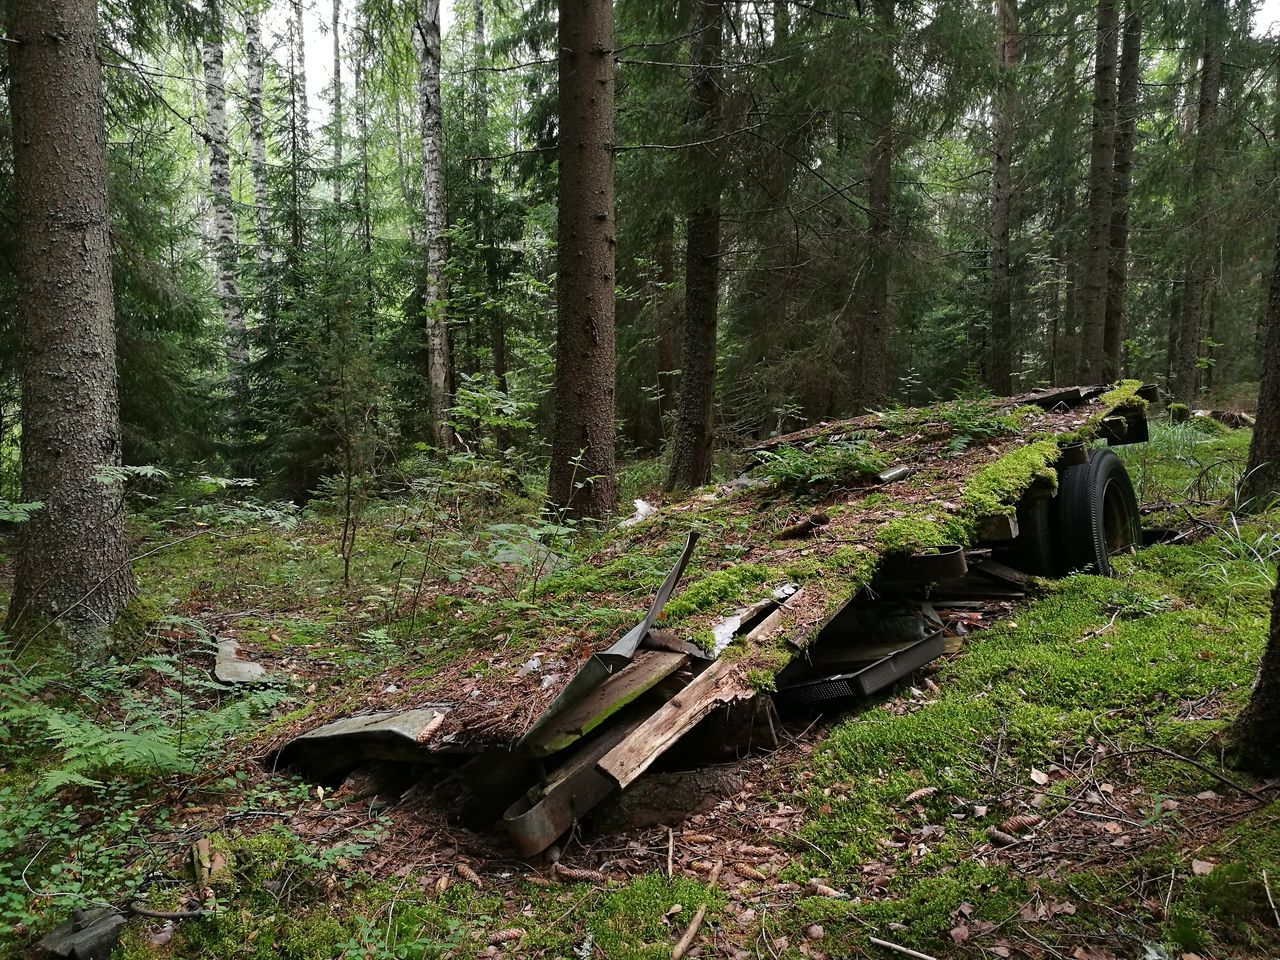 old trailer in forest.. Forest Find Walking In The Forest Abandoned Finland Nofilter Noedit HuaweiP9 Smartphone Photography Purist No Edit No Filter Nature Just Now